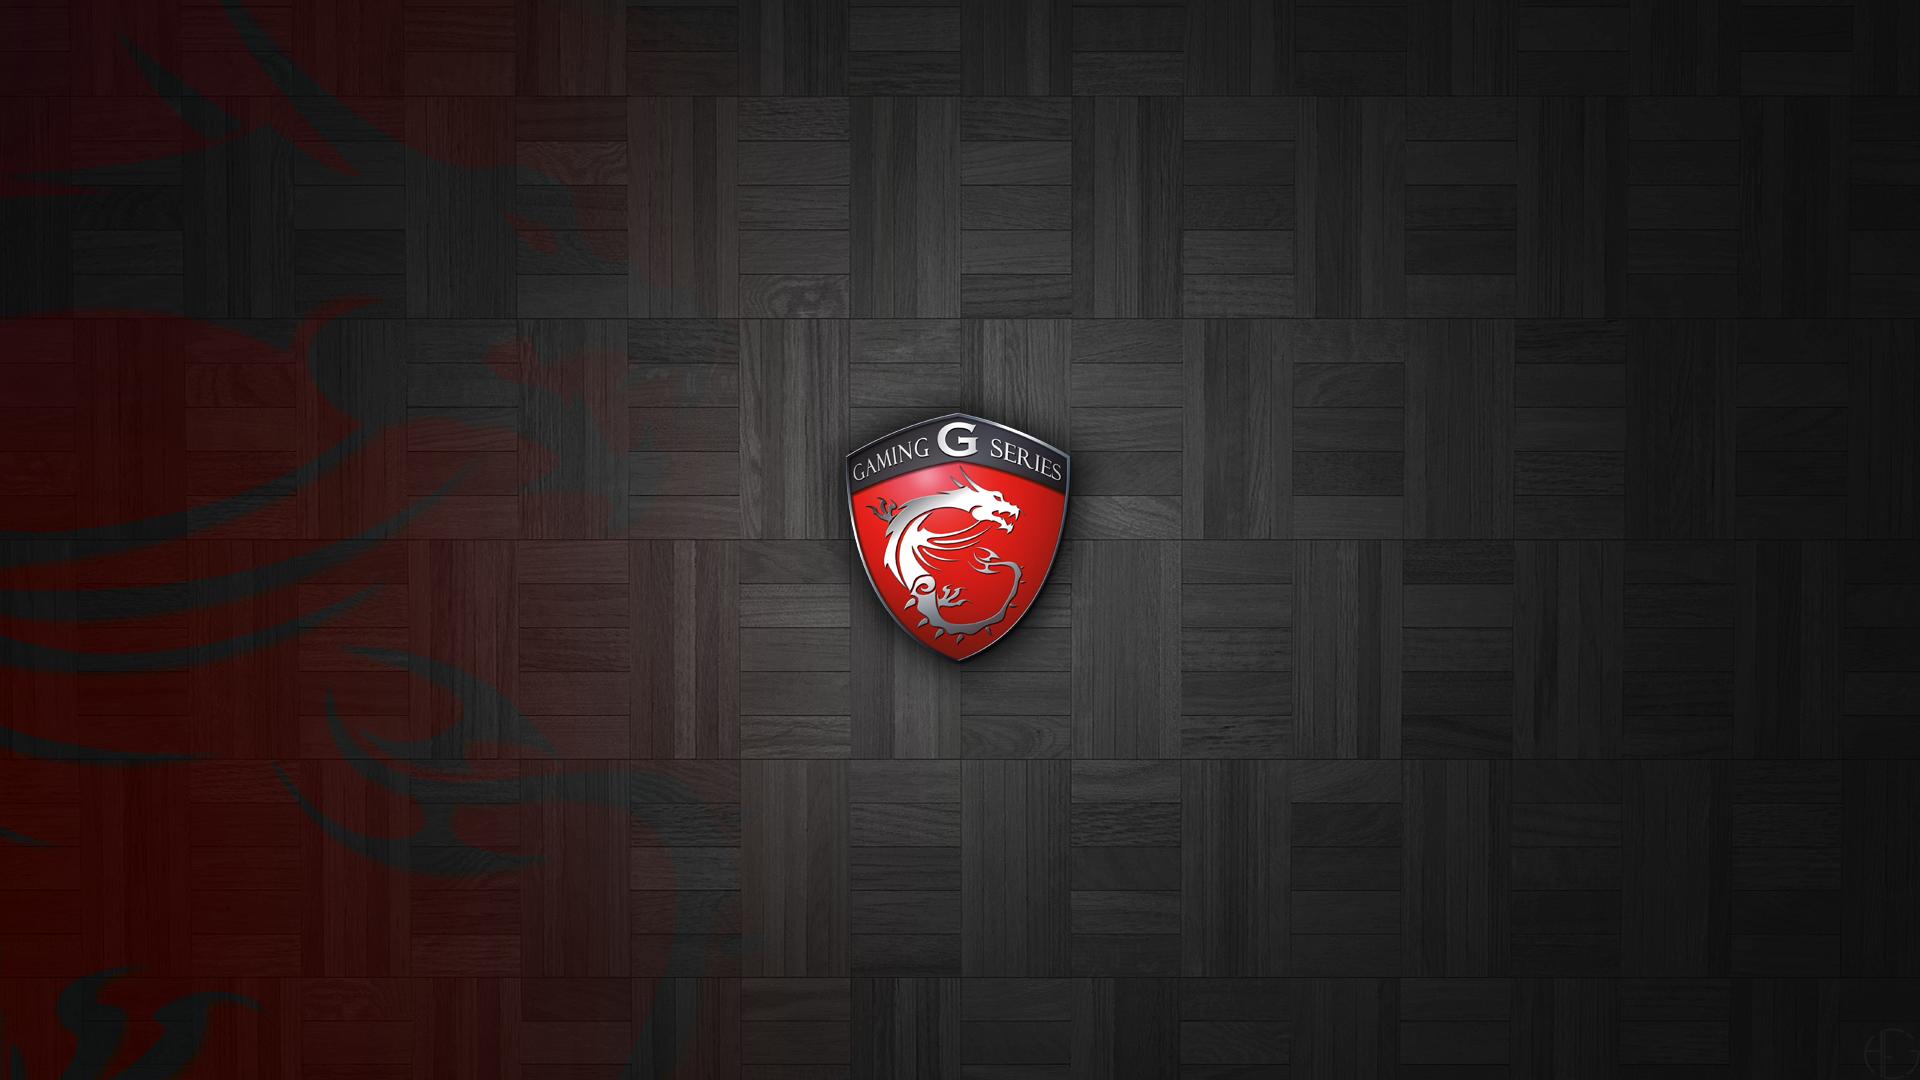 Cool 45 Msi Wallpaper For Laptops Msi In 2019 Laptop Wallpaper